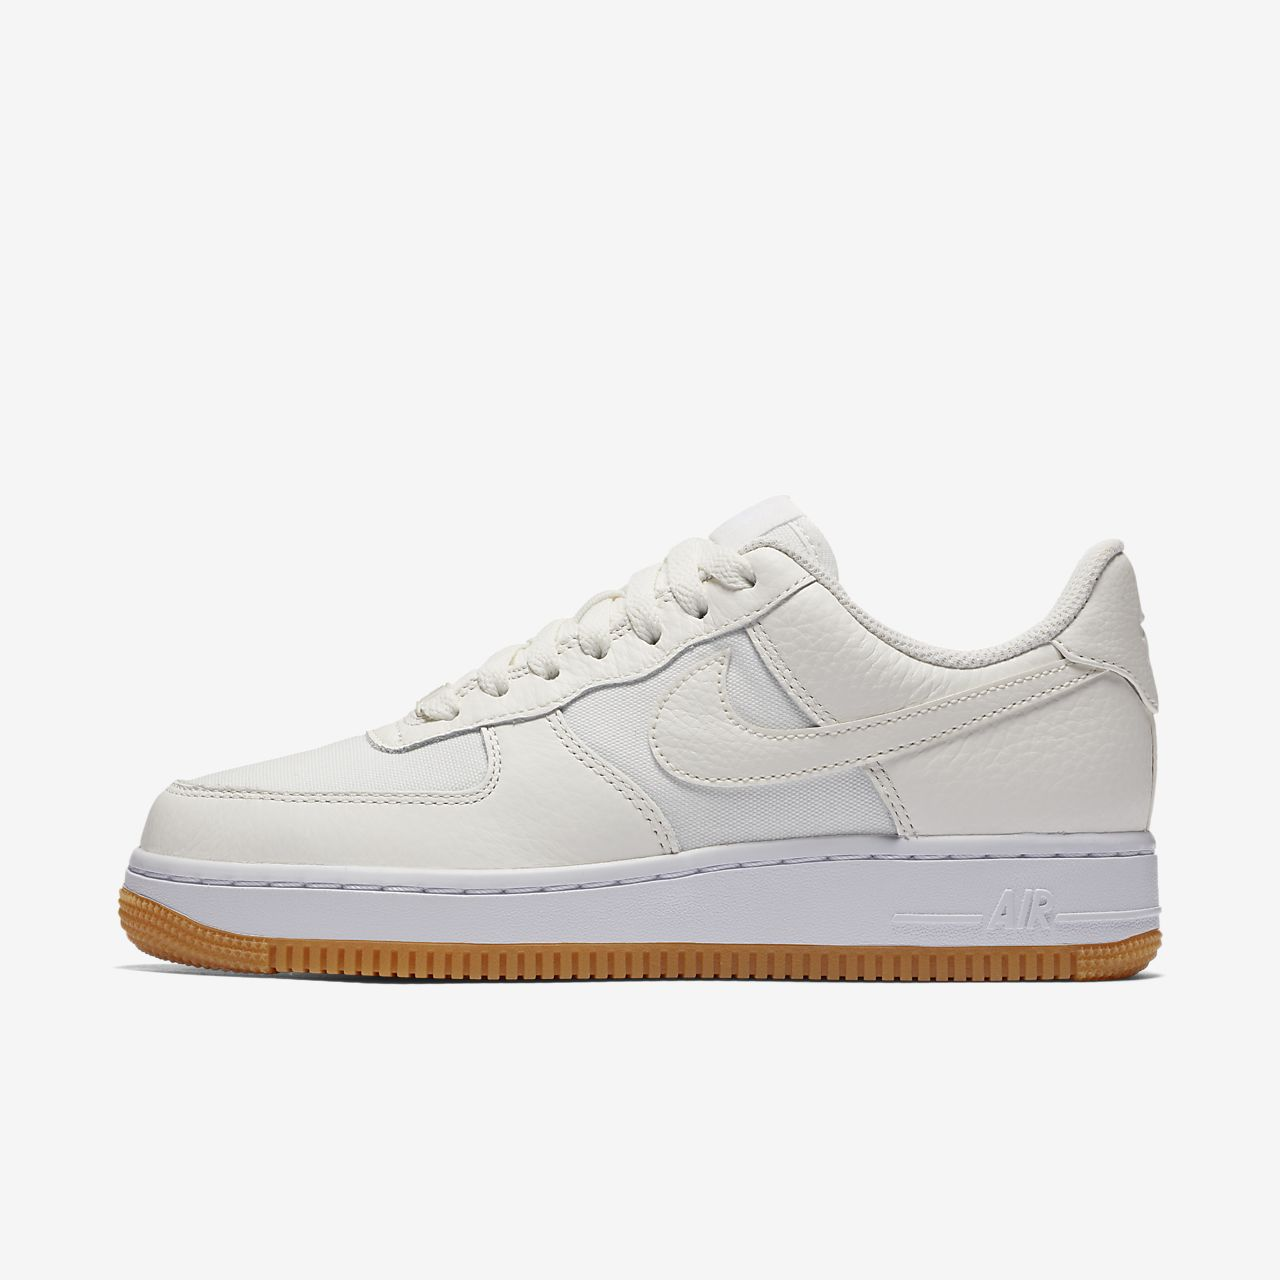 nike air force 1 se premium nz